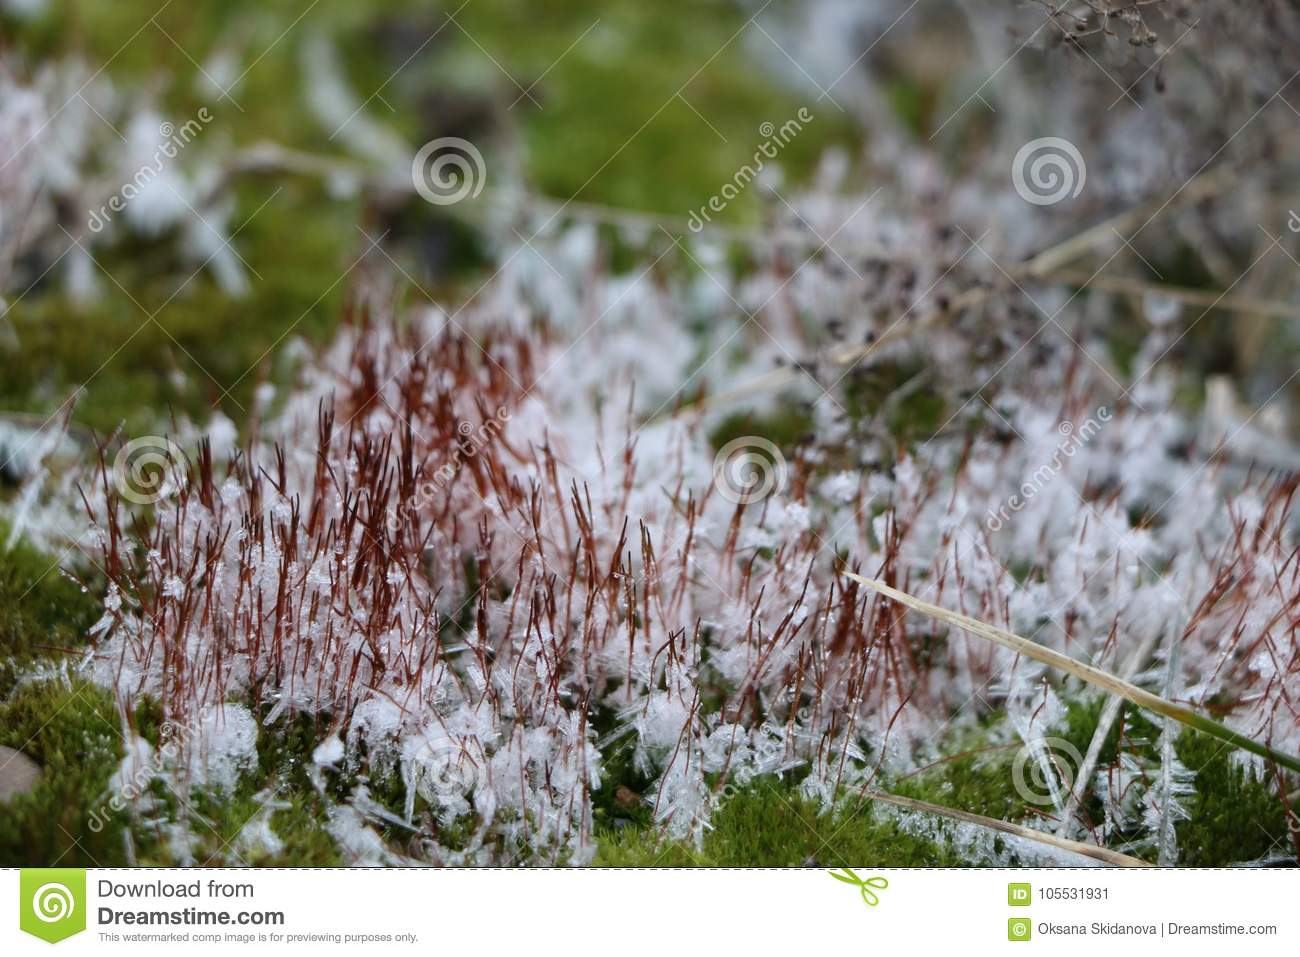 Gentle green fluffy moss with white snowflakes covers concrete slabs